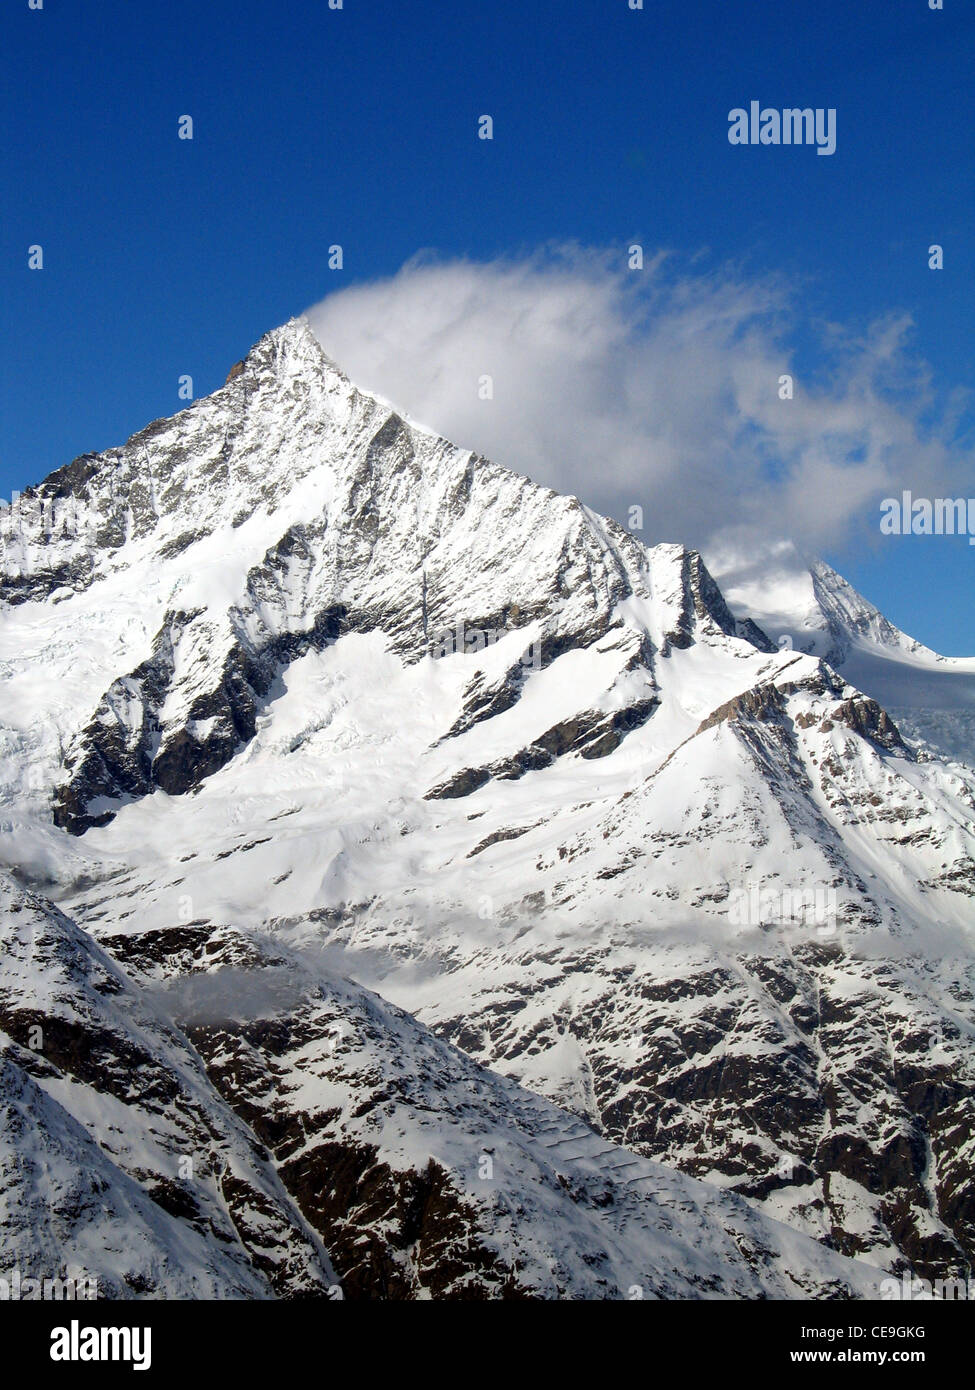 View of the Matterhorn, Monte Cervino or Mont Cervin mountain in the Pennine Alps on the border between Switzerland - Stock Image